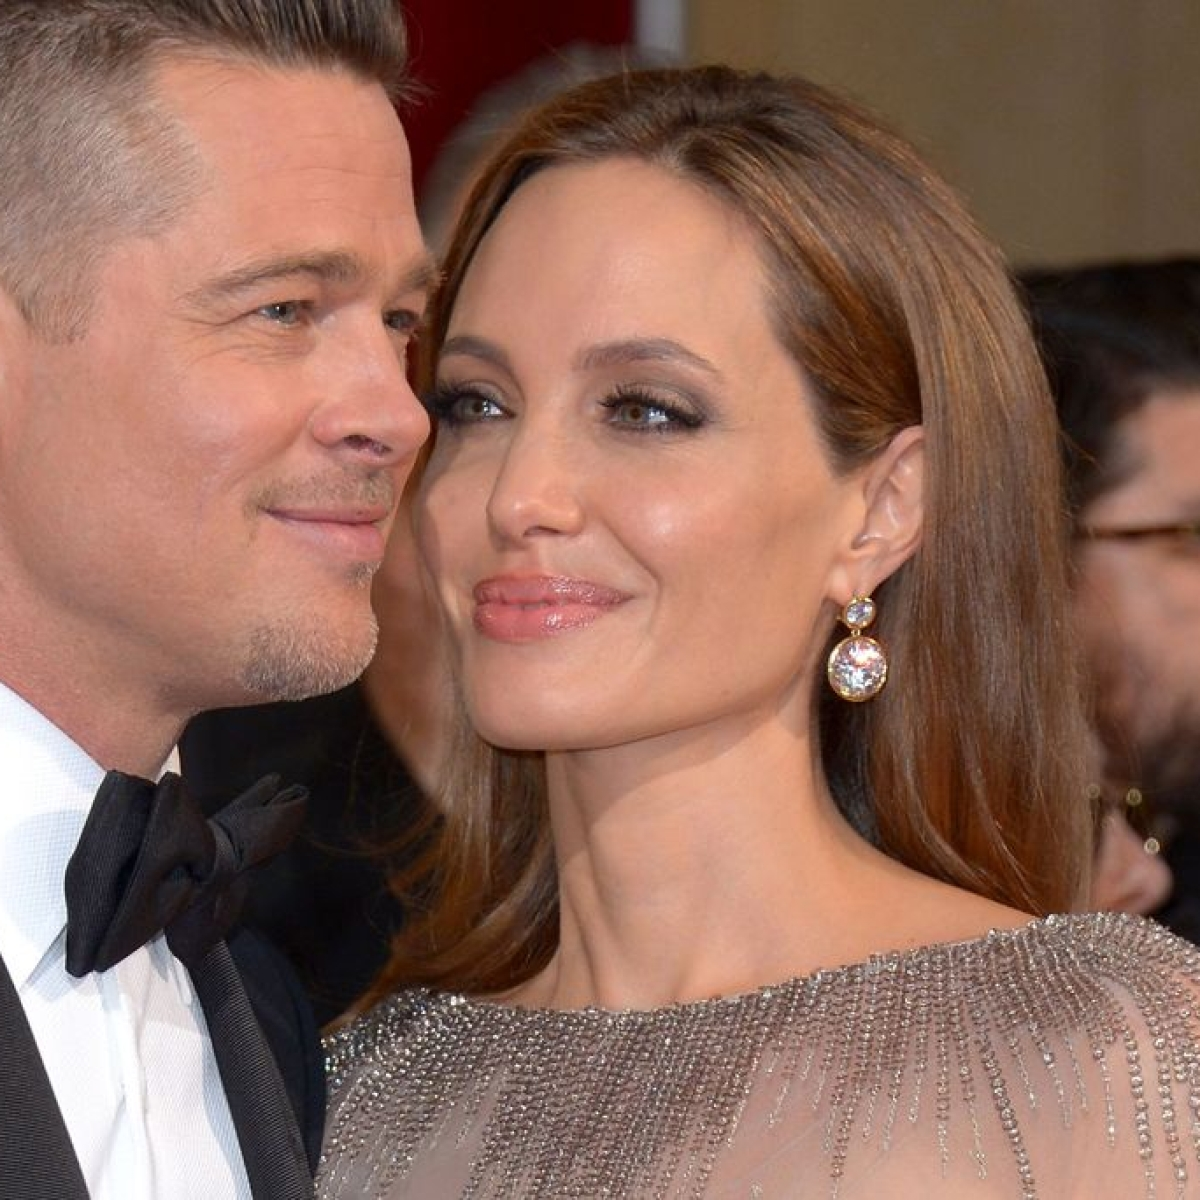 Ahead of divorce trial, Angelina Jolie claims to have 'proof of domestic violence' against Brad Pitt